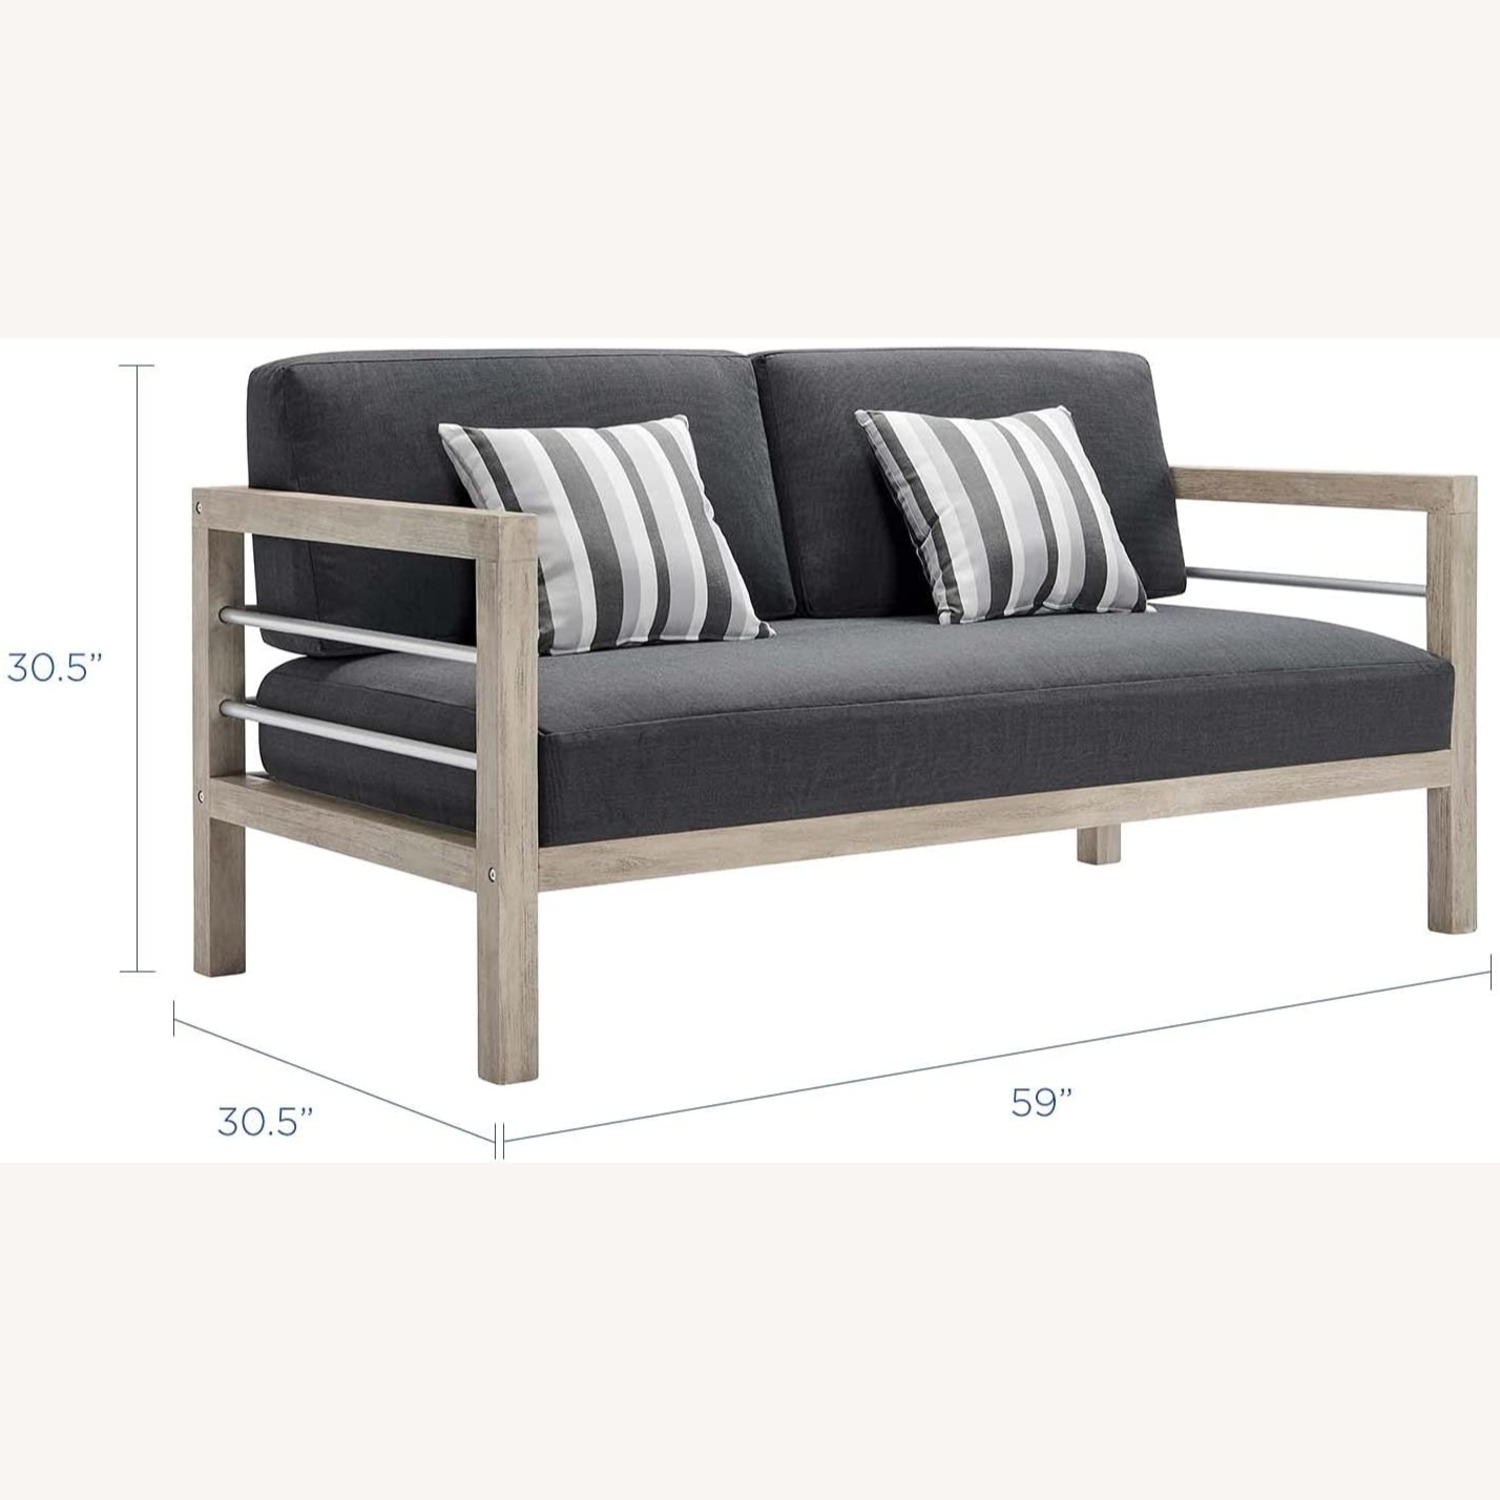 Outdoor Patio Set In Light Gray Wood Finish - image-2